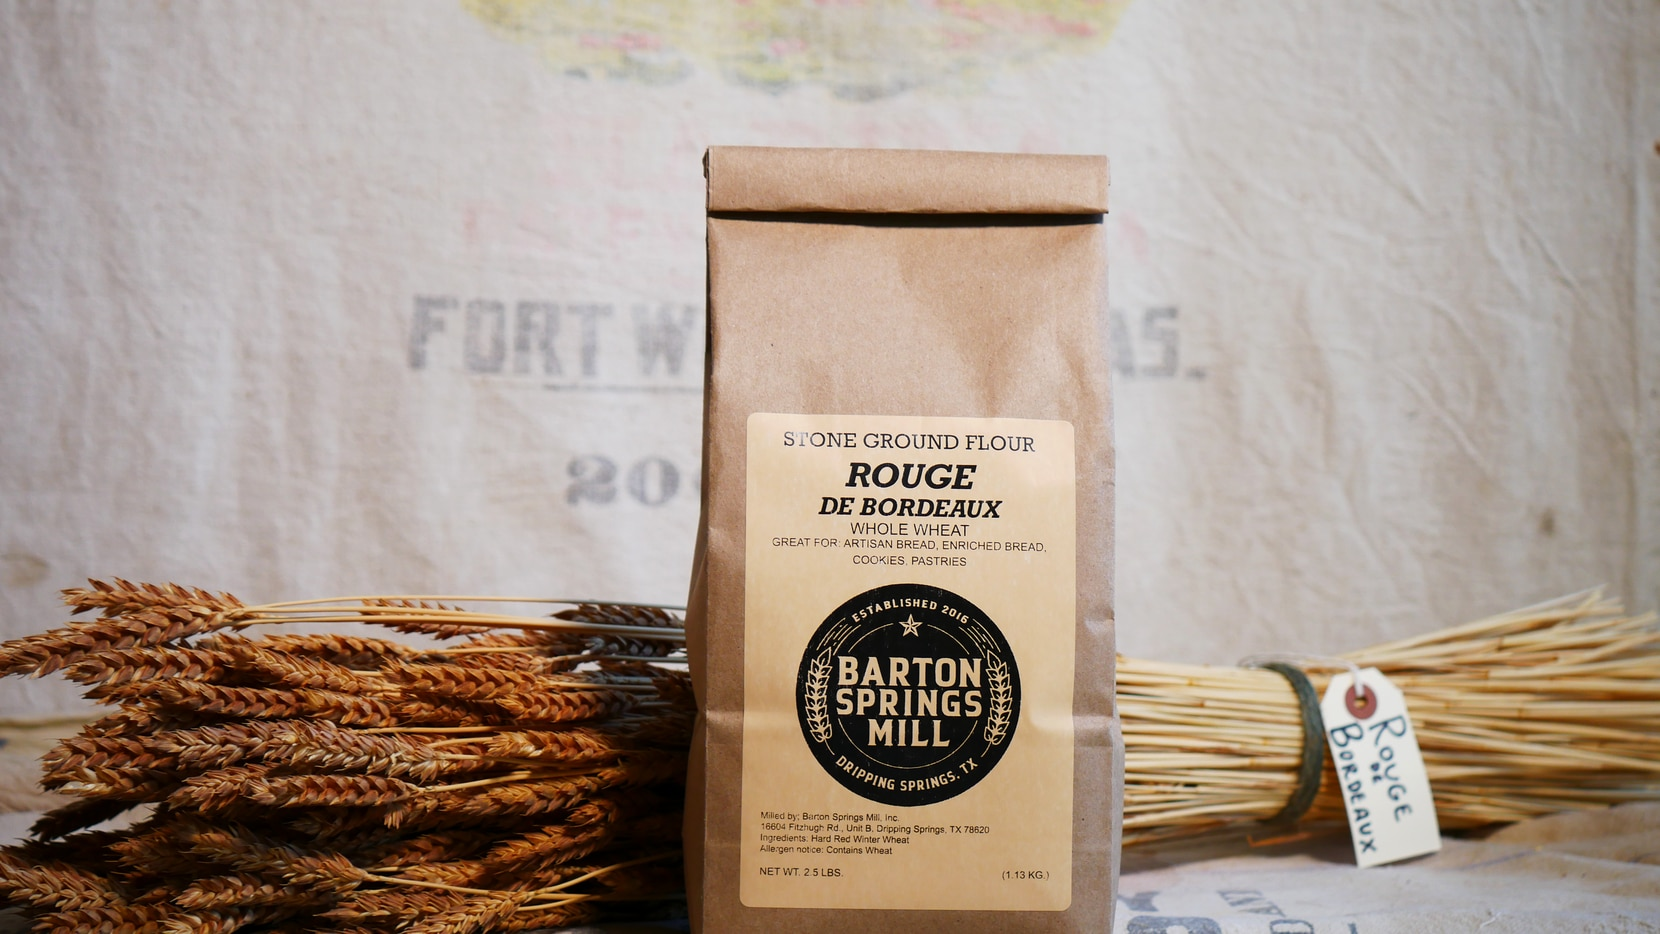 Flours and other grains from Barton Springs Mill are now available retail.